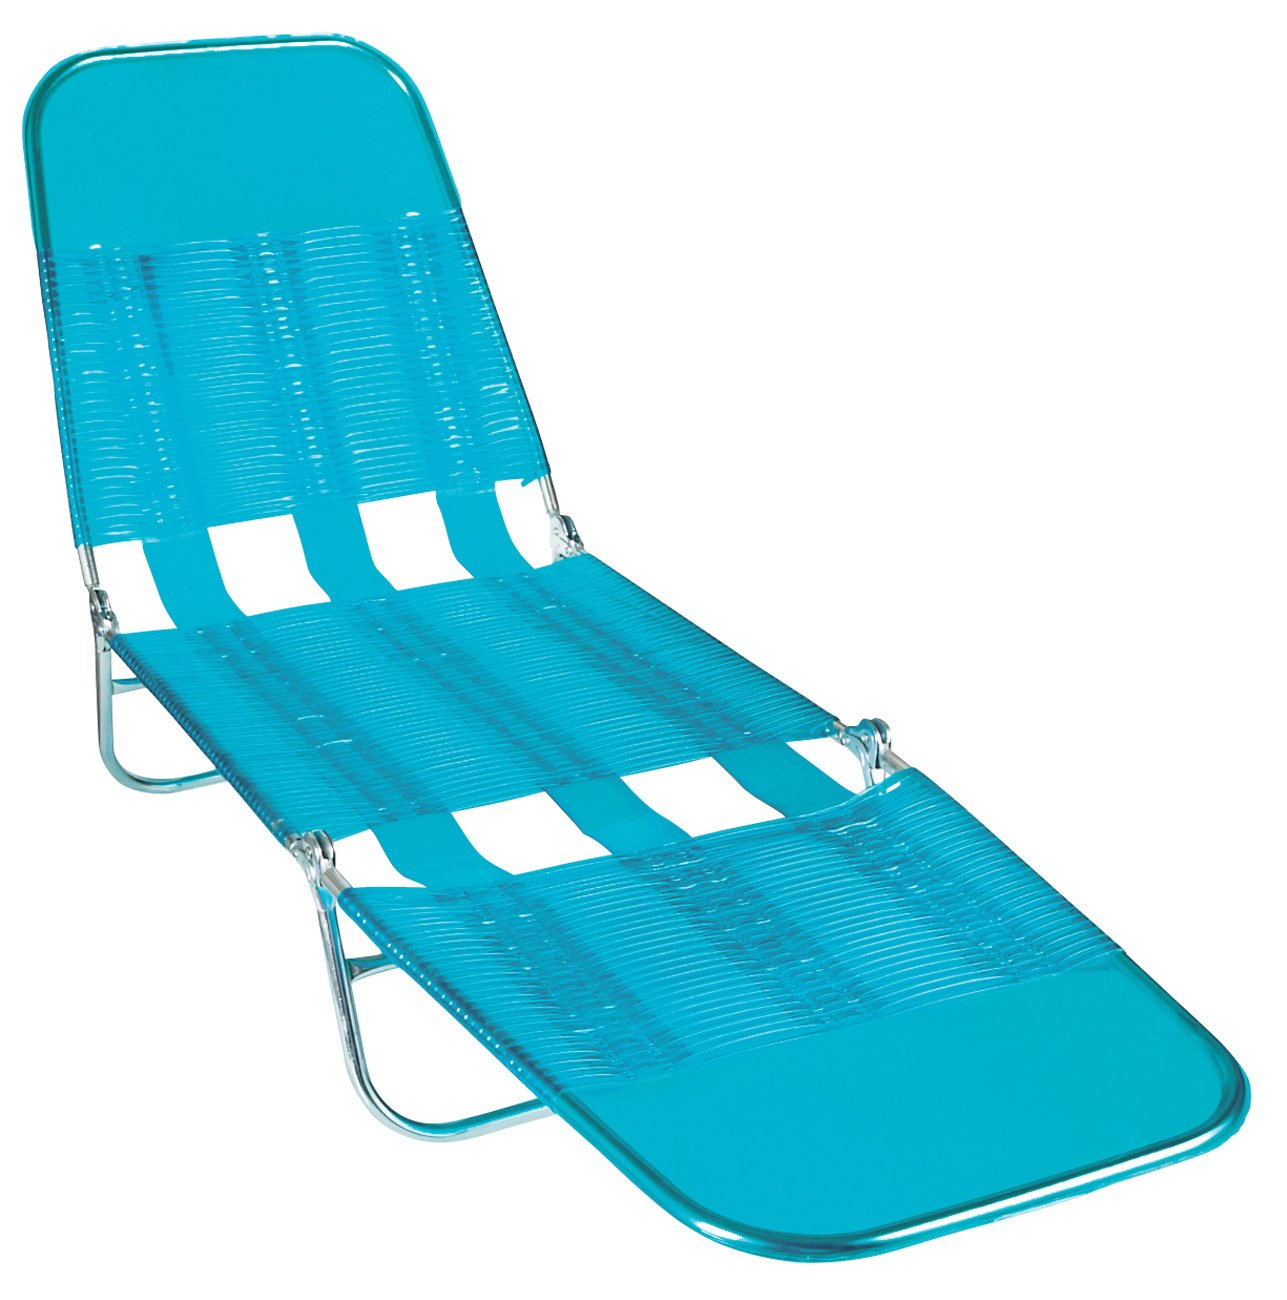 Picture of: Shin Crest Teal Folding Lounge Chair Shop Chairs Seating At H E B